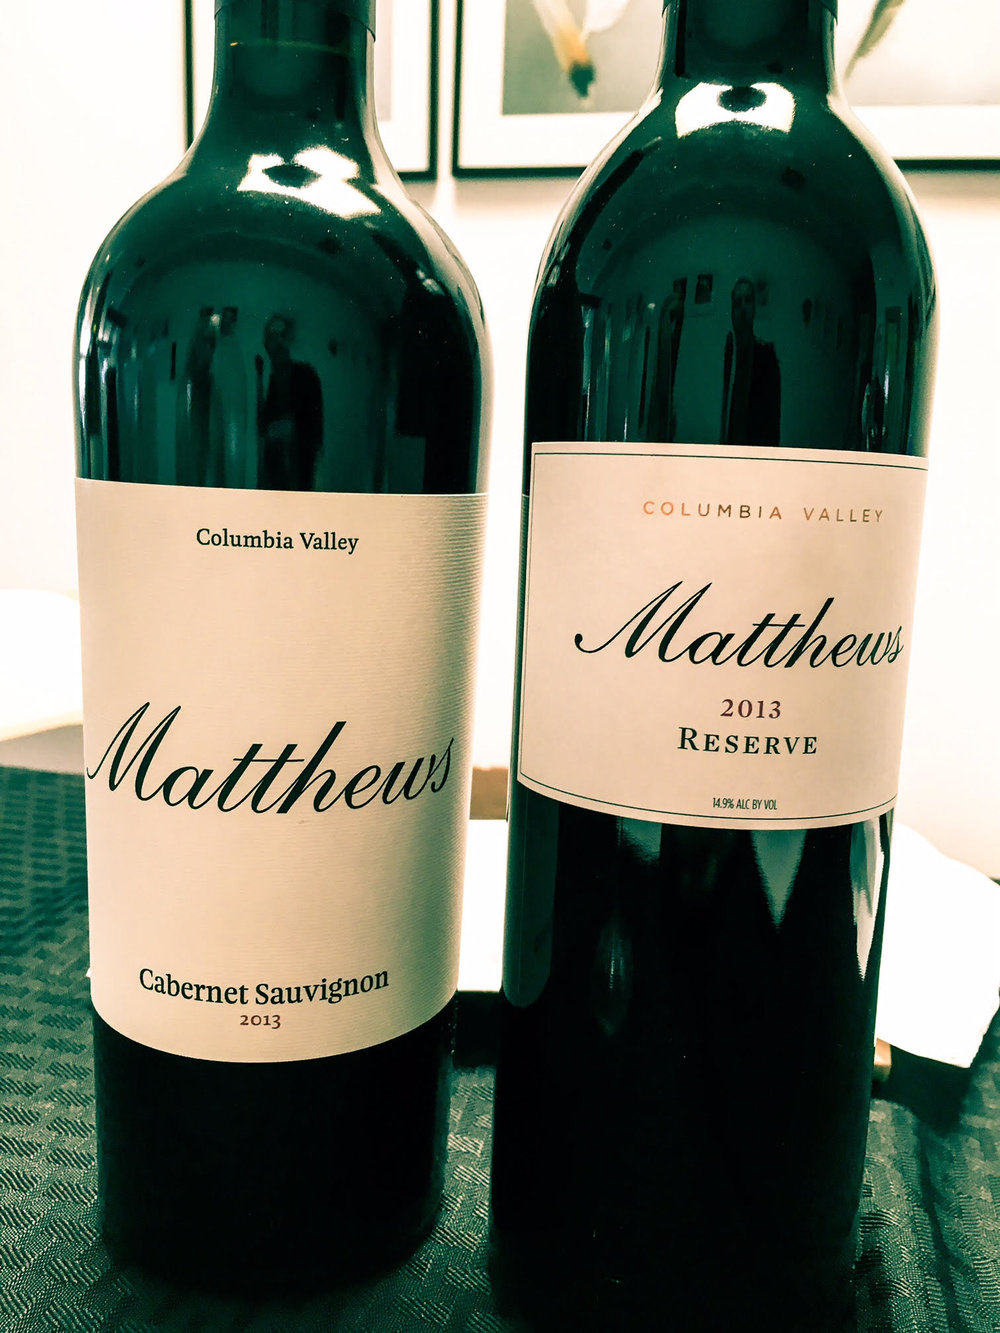 Gorgeous new Cabernet releases form the warm 2013 vintage by Matthews